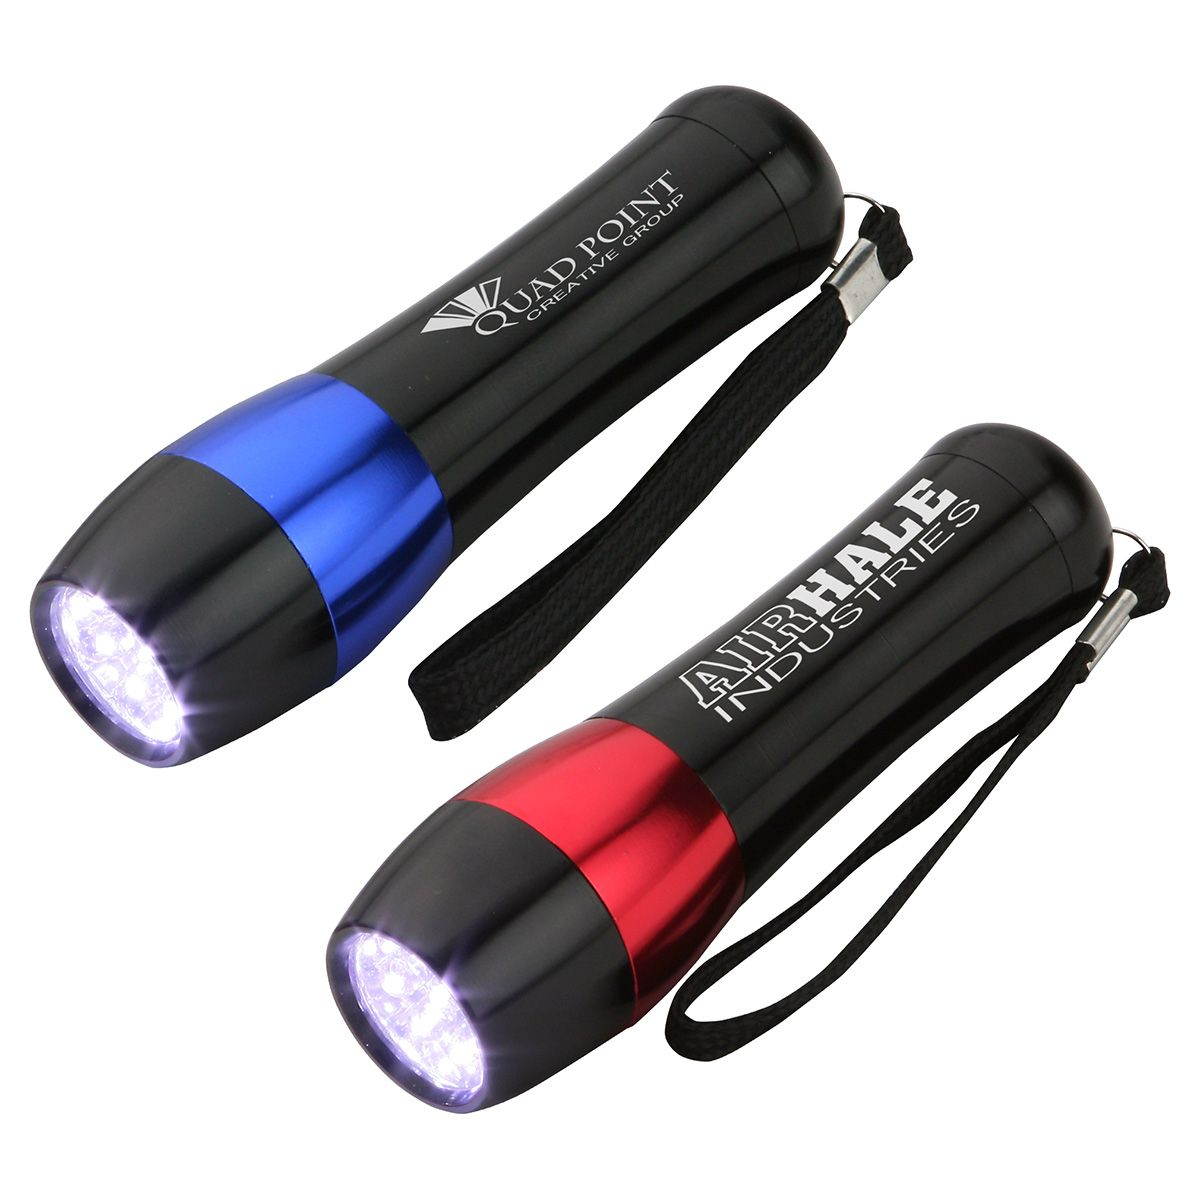 lights flash flashlight n home lighting coast blacks safety b security tools focusing accessories flashlights depot the led